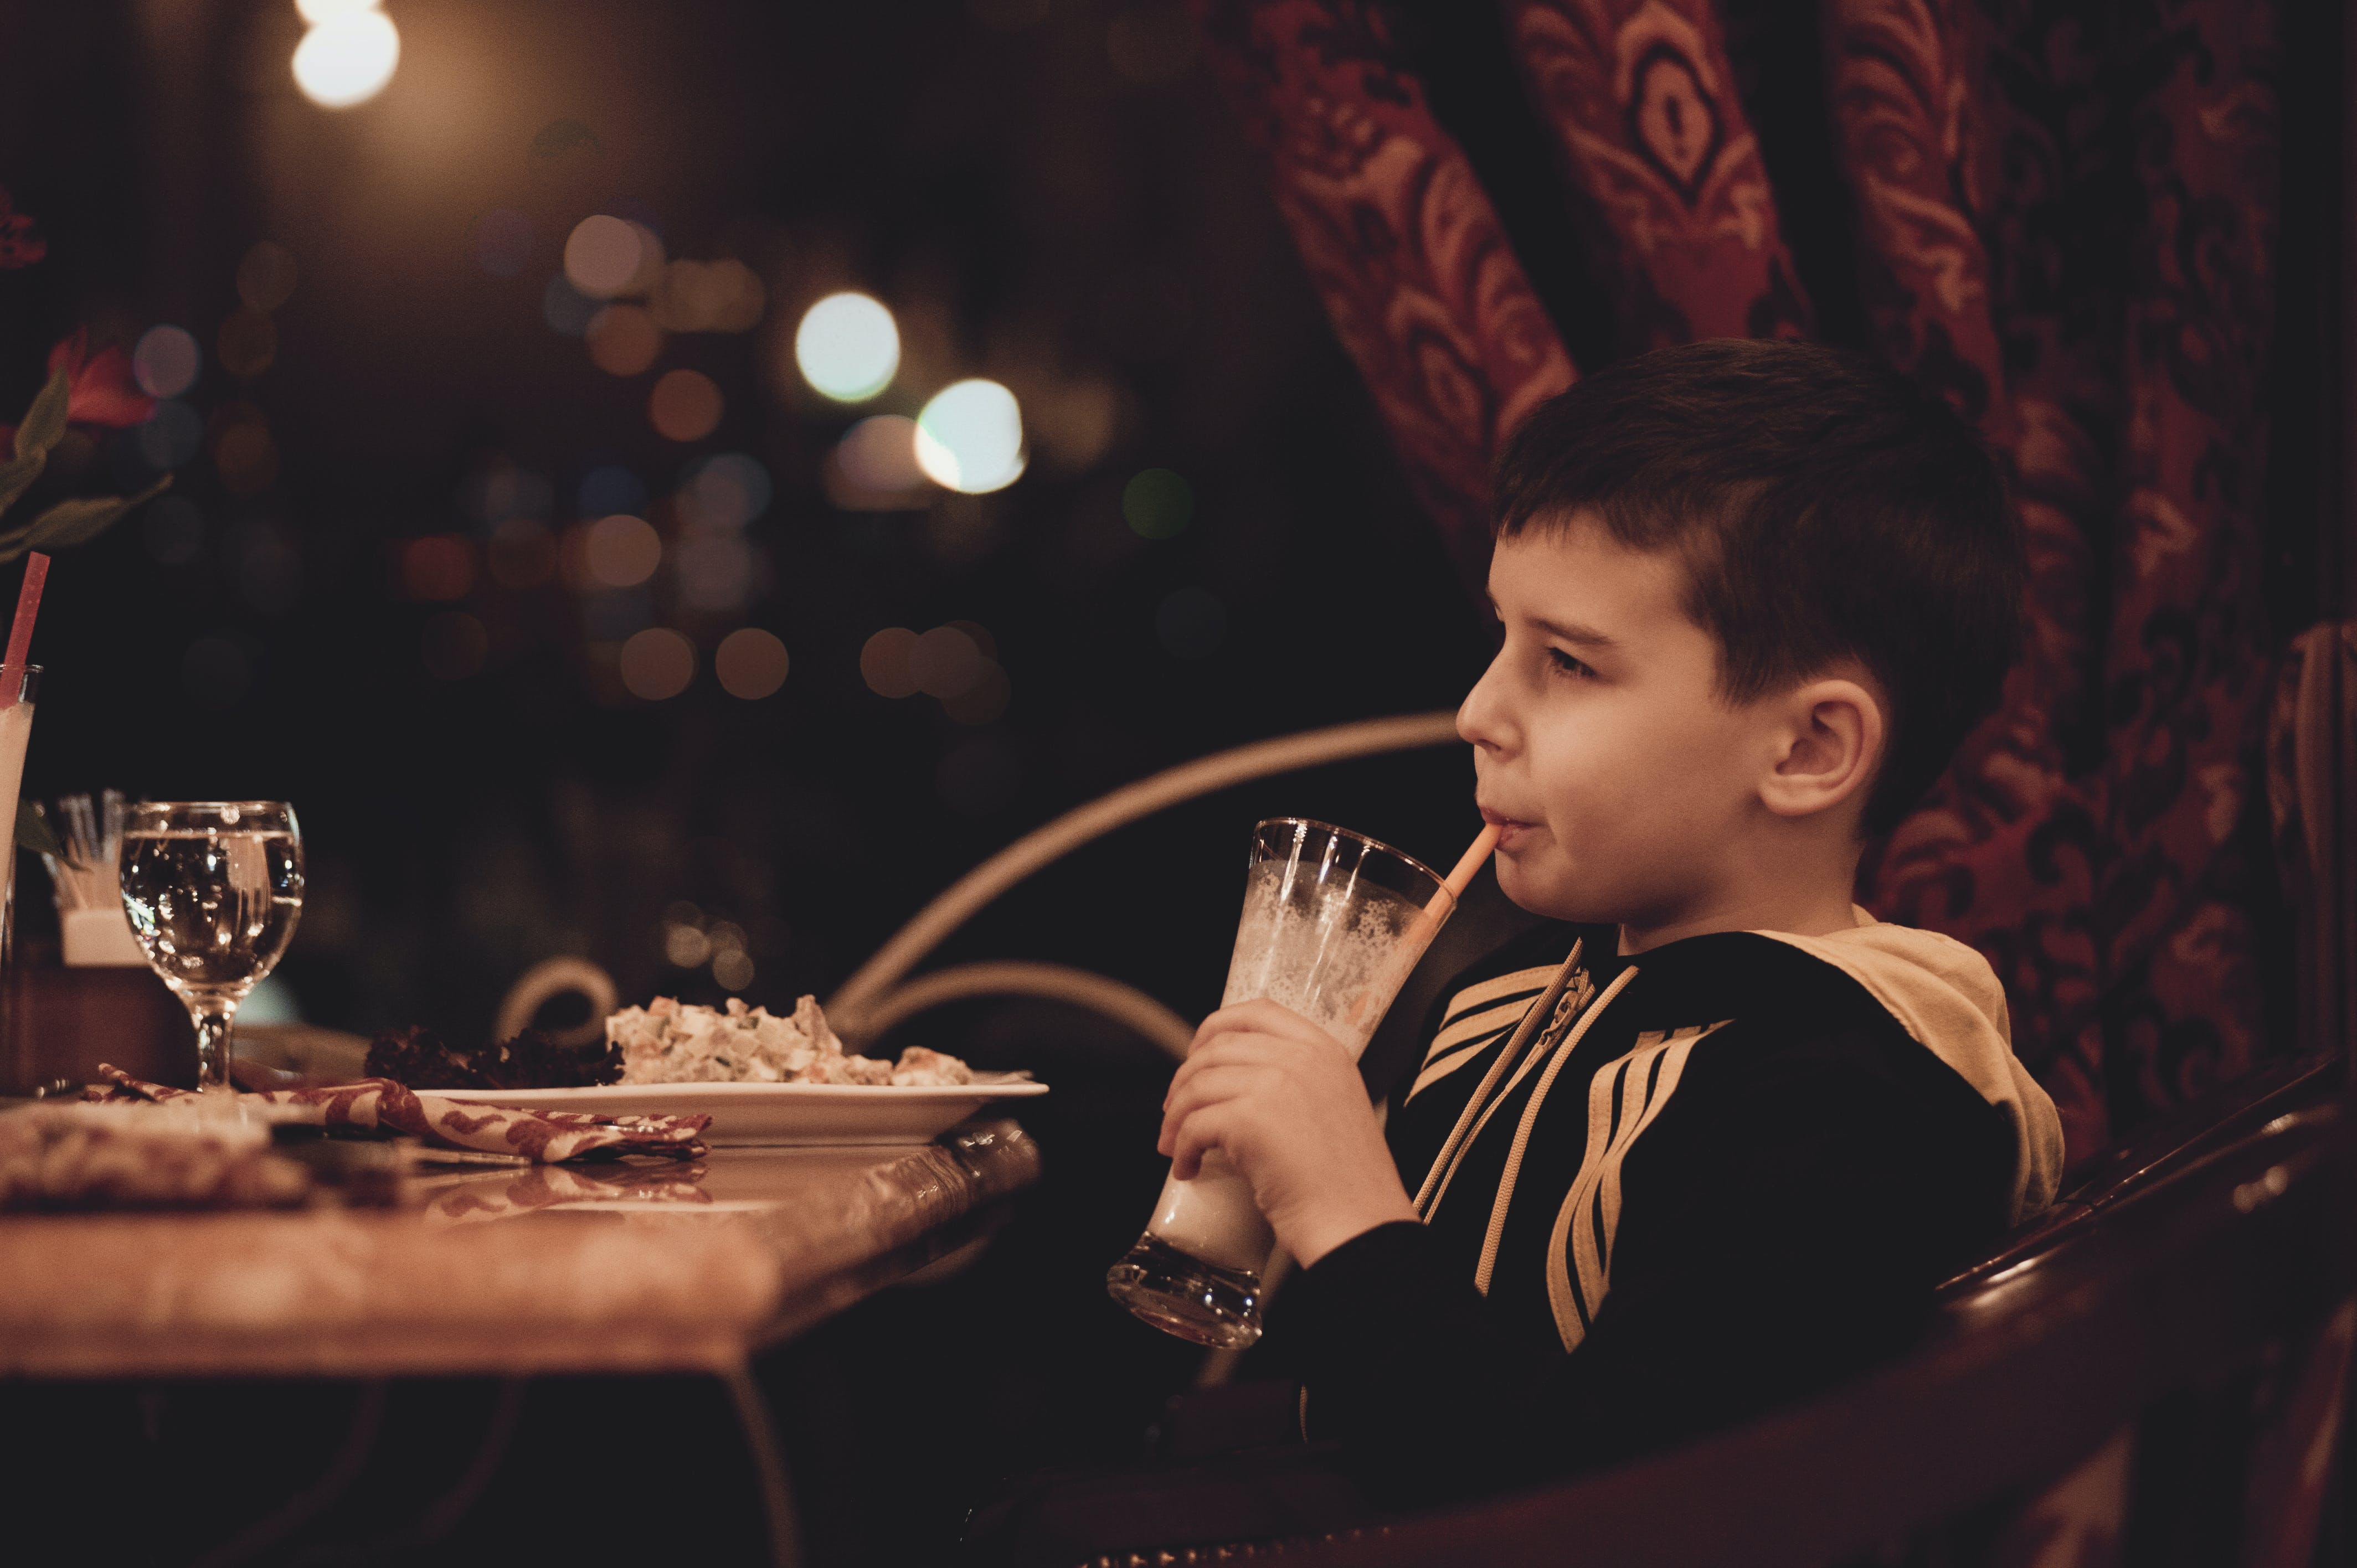 Boy Holding Drinking Glass Sitting in Front of Table